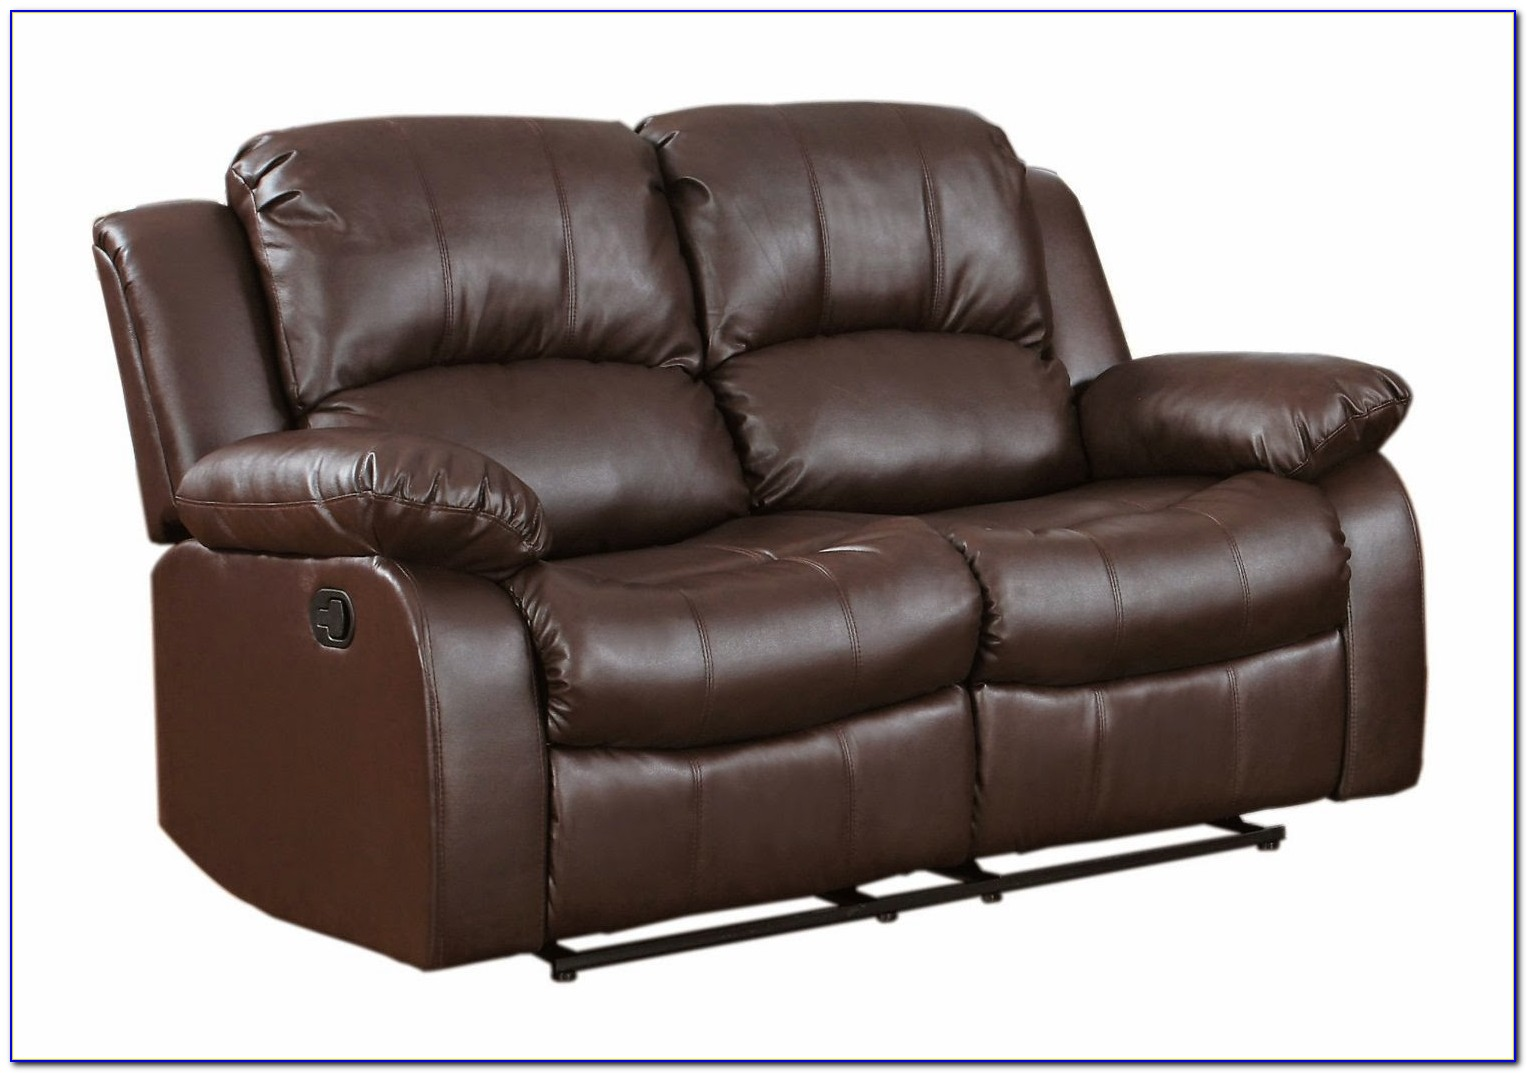 Leather Furniture With Recliners